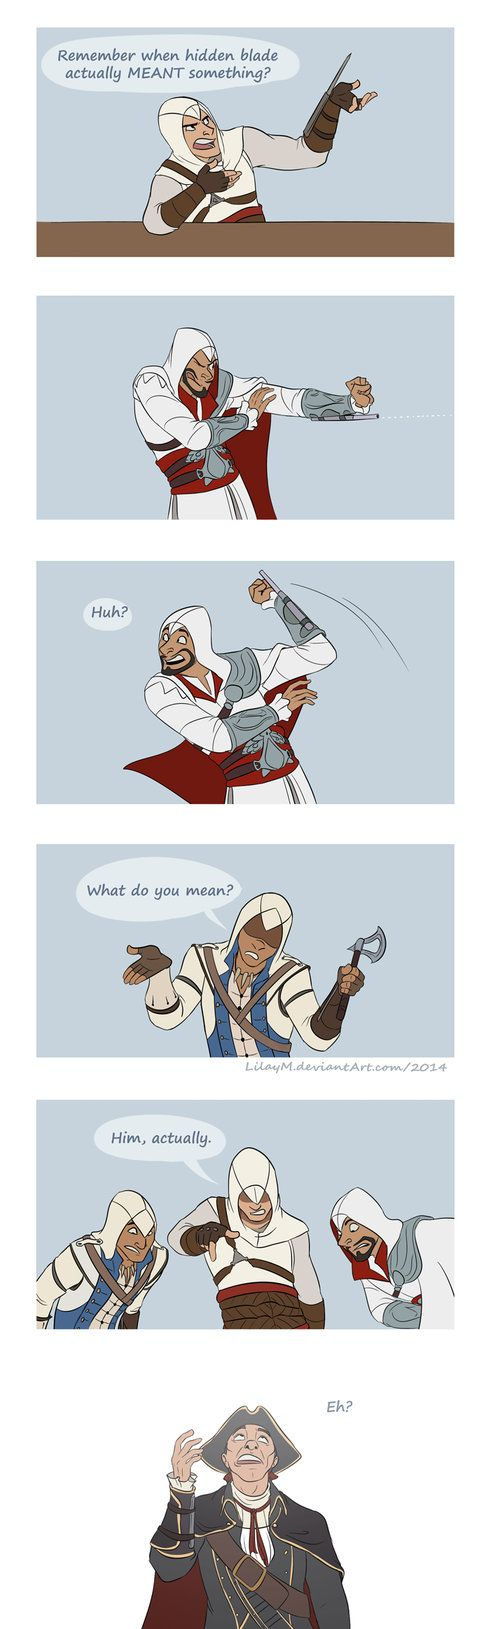 On tumblr I hate to be the one to always moan bout good ol times, but seriously... In AC, hidden blade was wow supercool assassin prestige woah! And then came Ezio with his gadgets... Especially th...